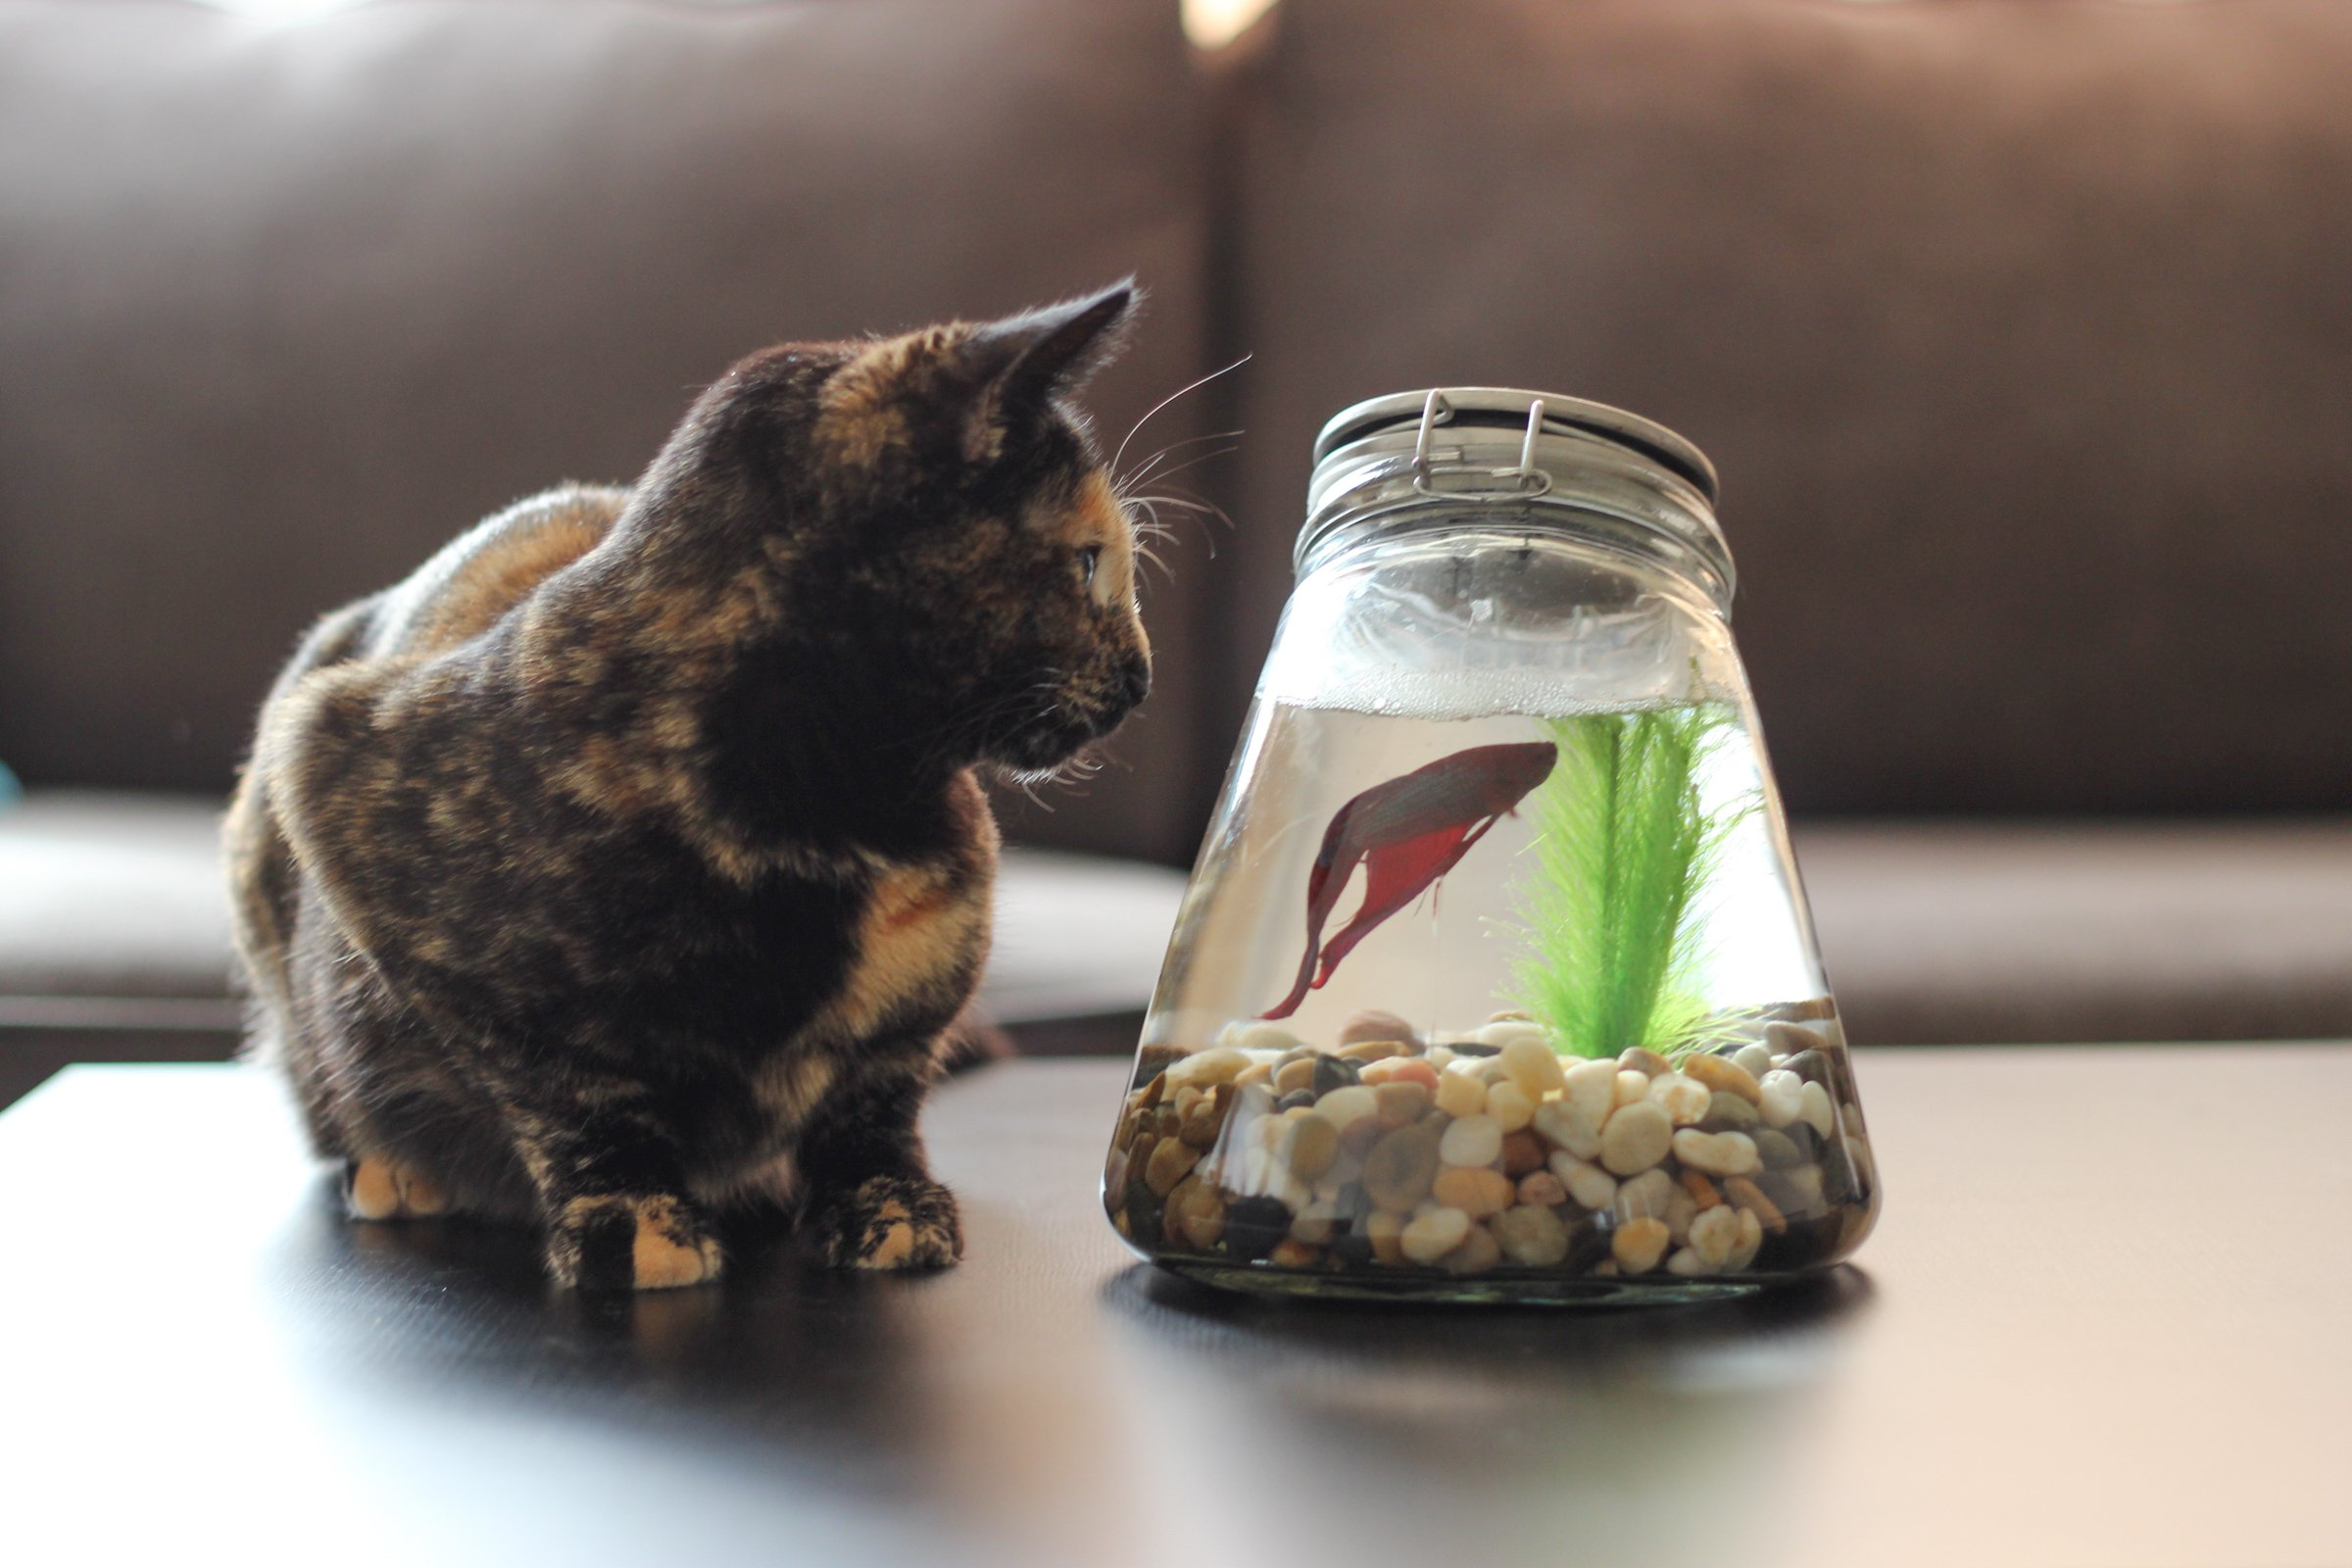 Free stock photo of cat looking at betta fish in bowl for Beta fish bowl